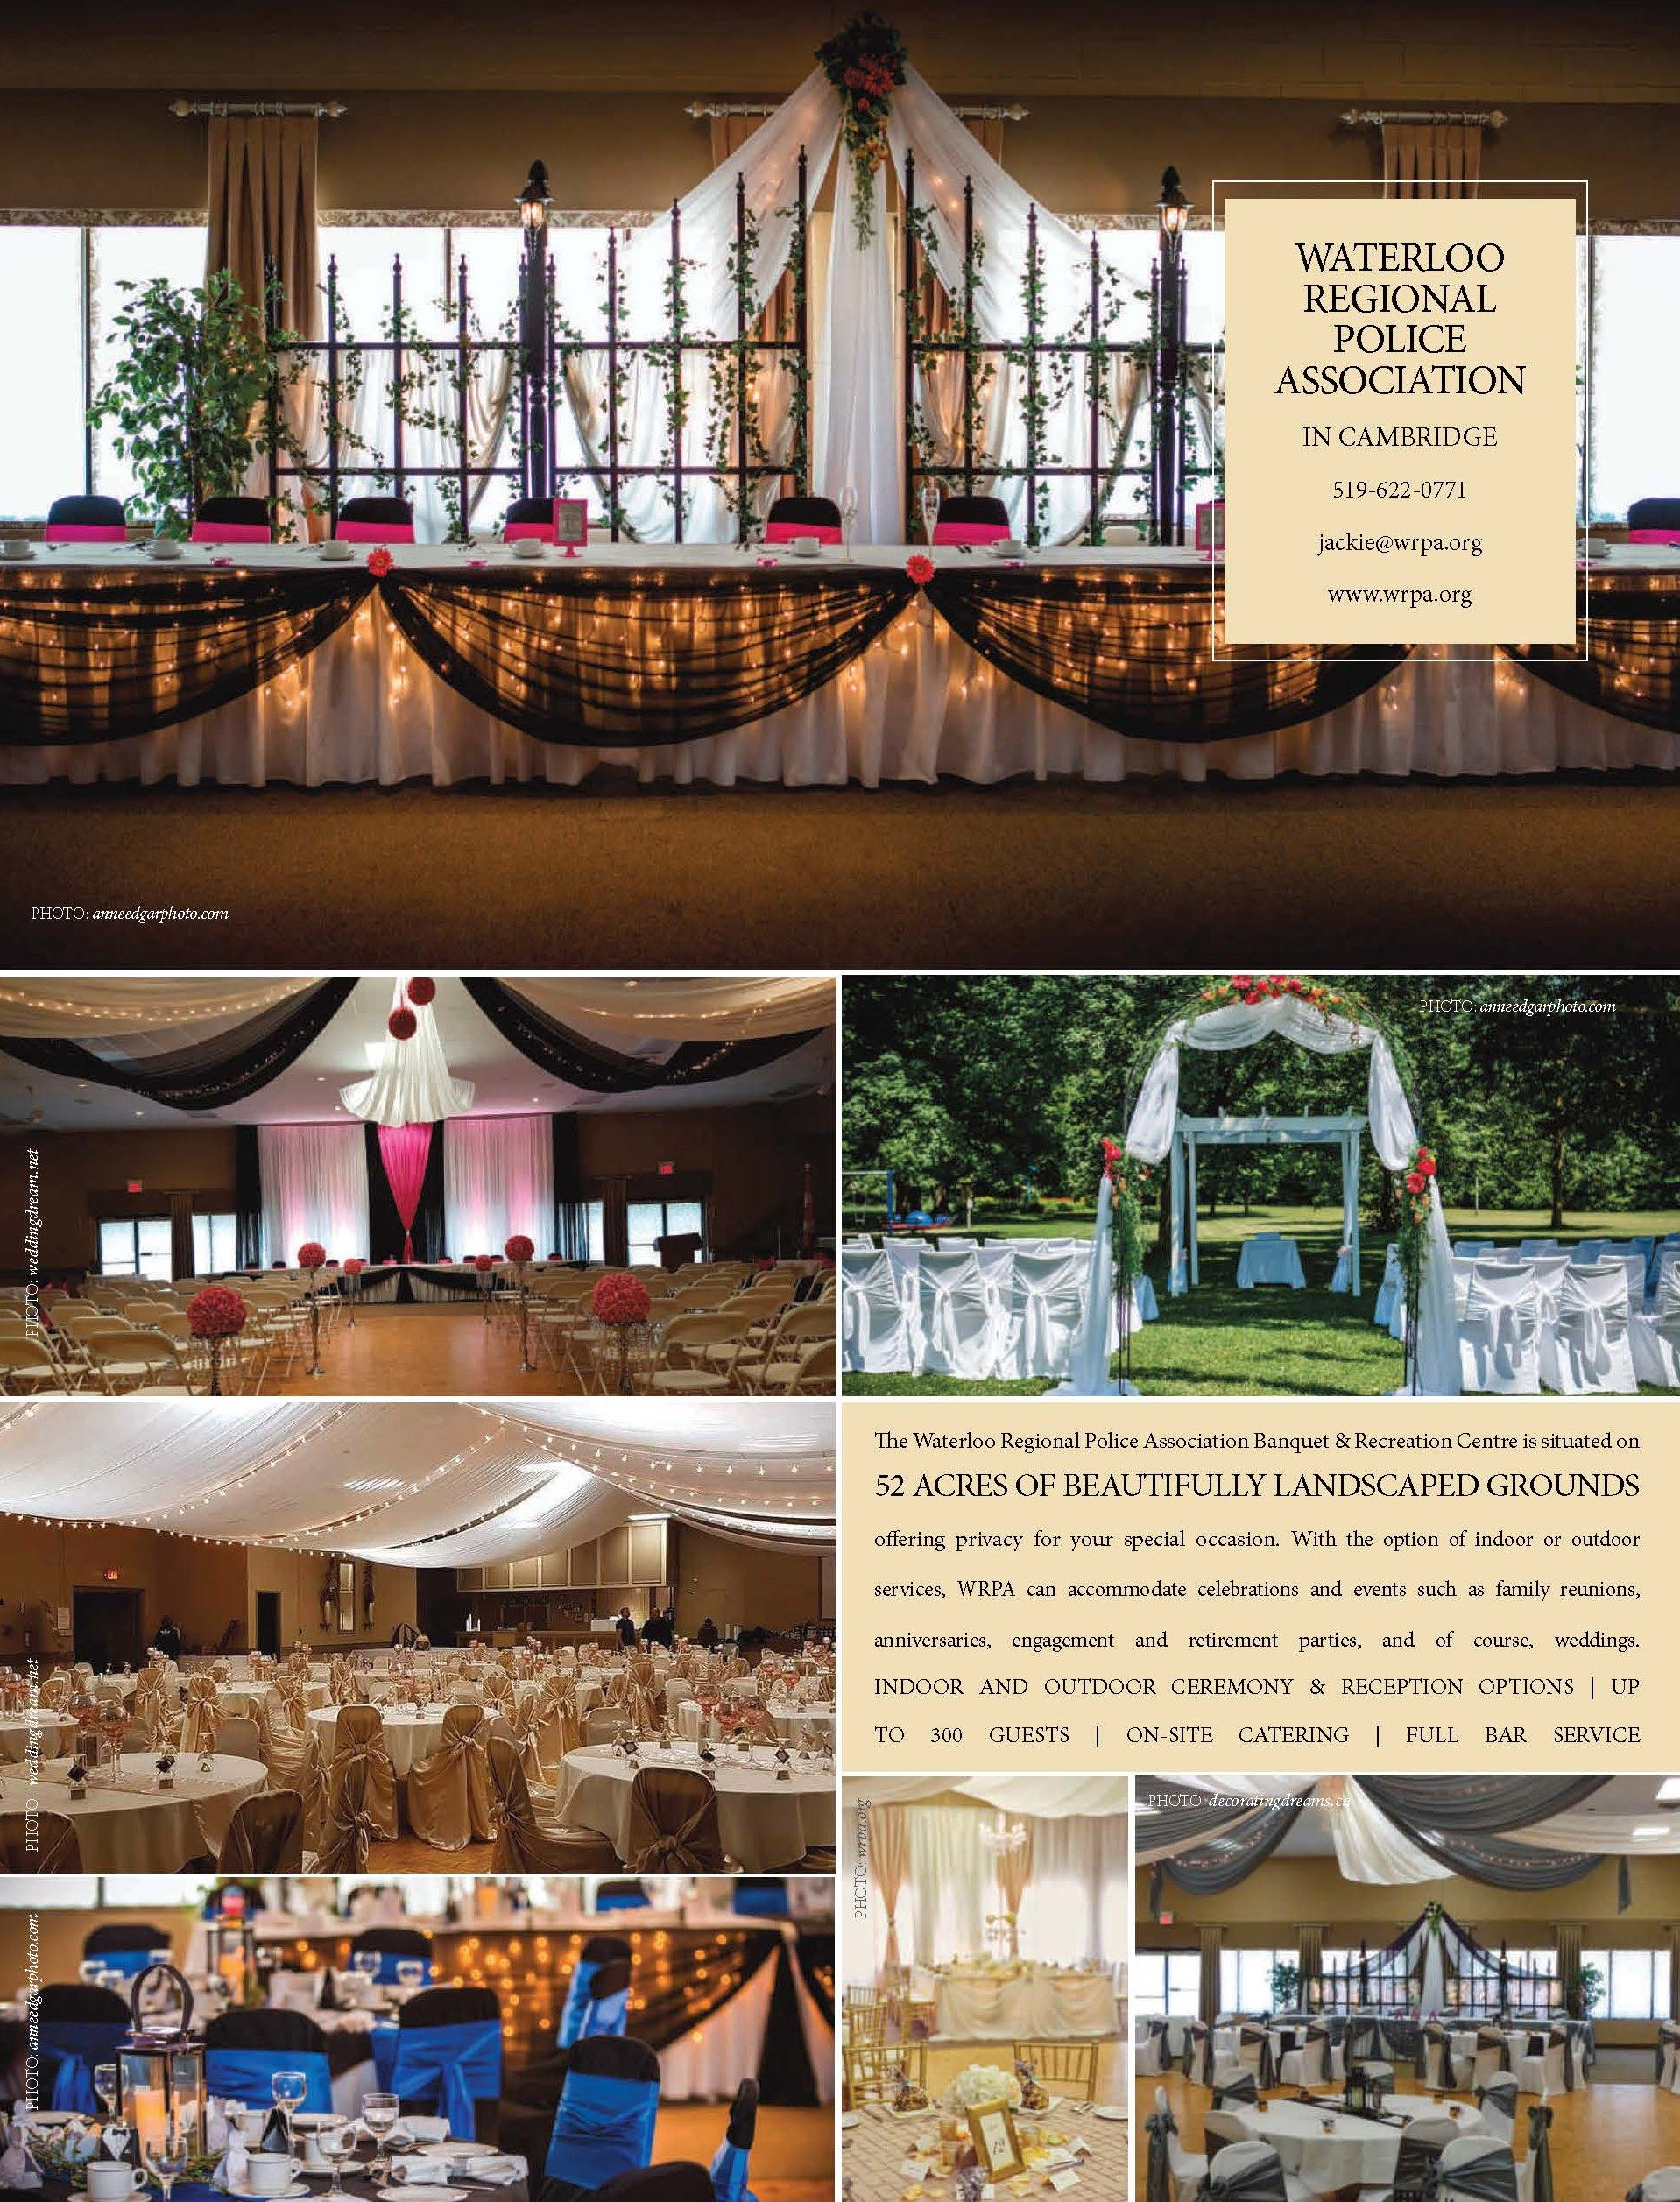 Waterloo Regional Police Association | Photos: top, right middle top, bottom left: Anne Edgar Photography | left top, left middle: Wedding Dream | right bottom: Decorating Dreams | right middle bottom: Waterloo Regional Police Association